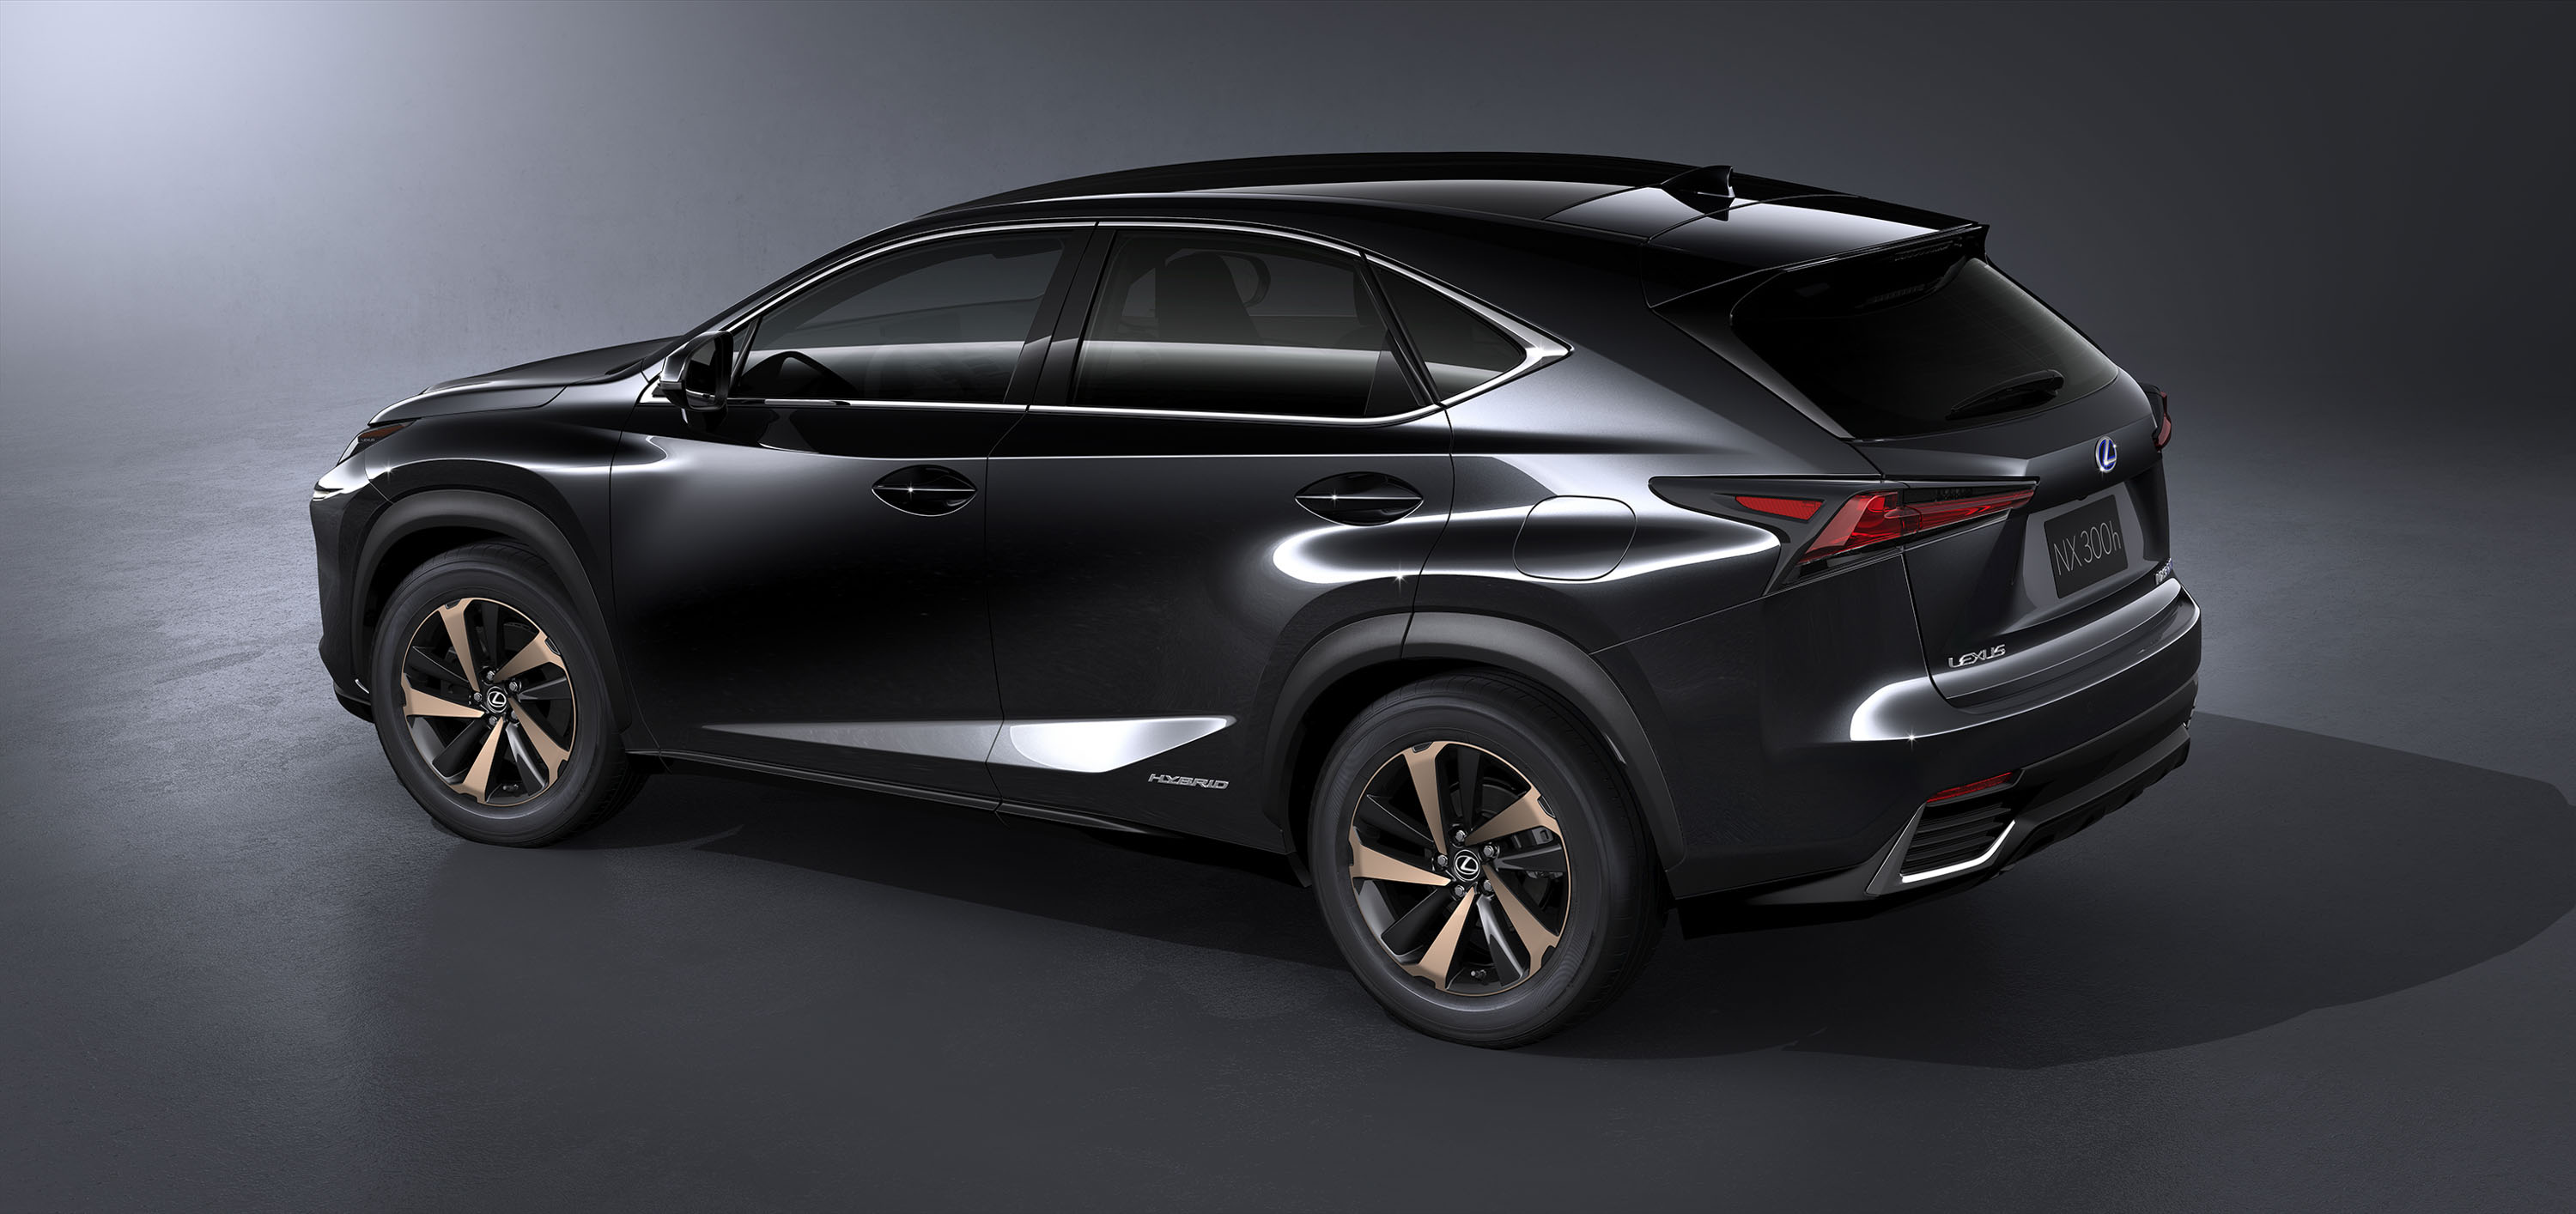 premium features the prevnext hybrid suvs worth lexus are suv they models